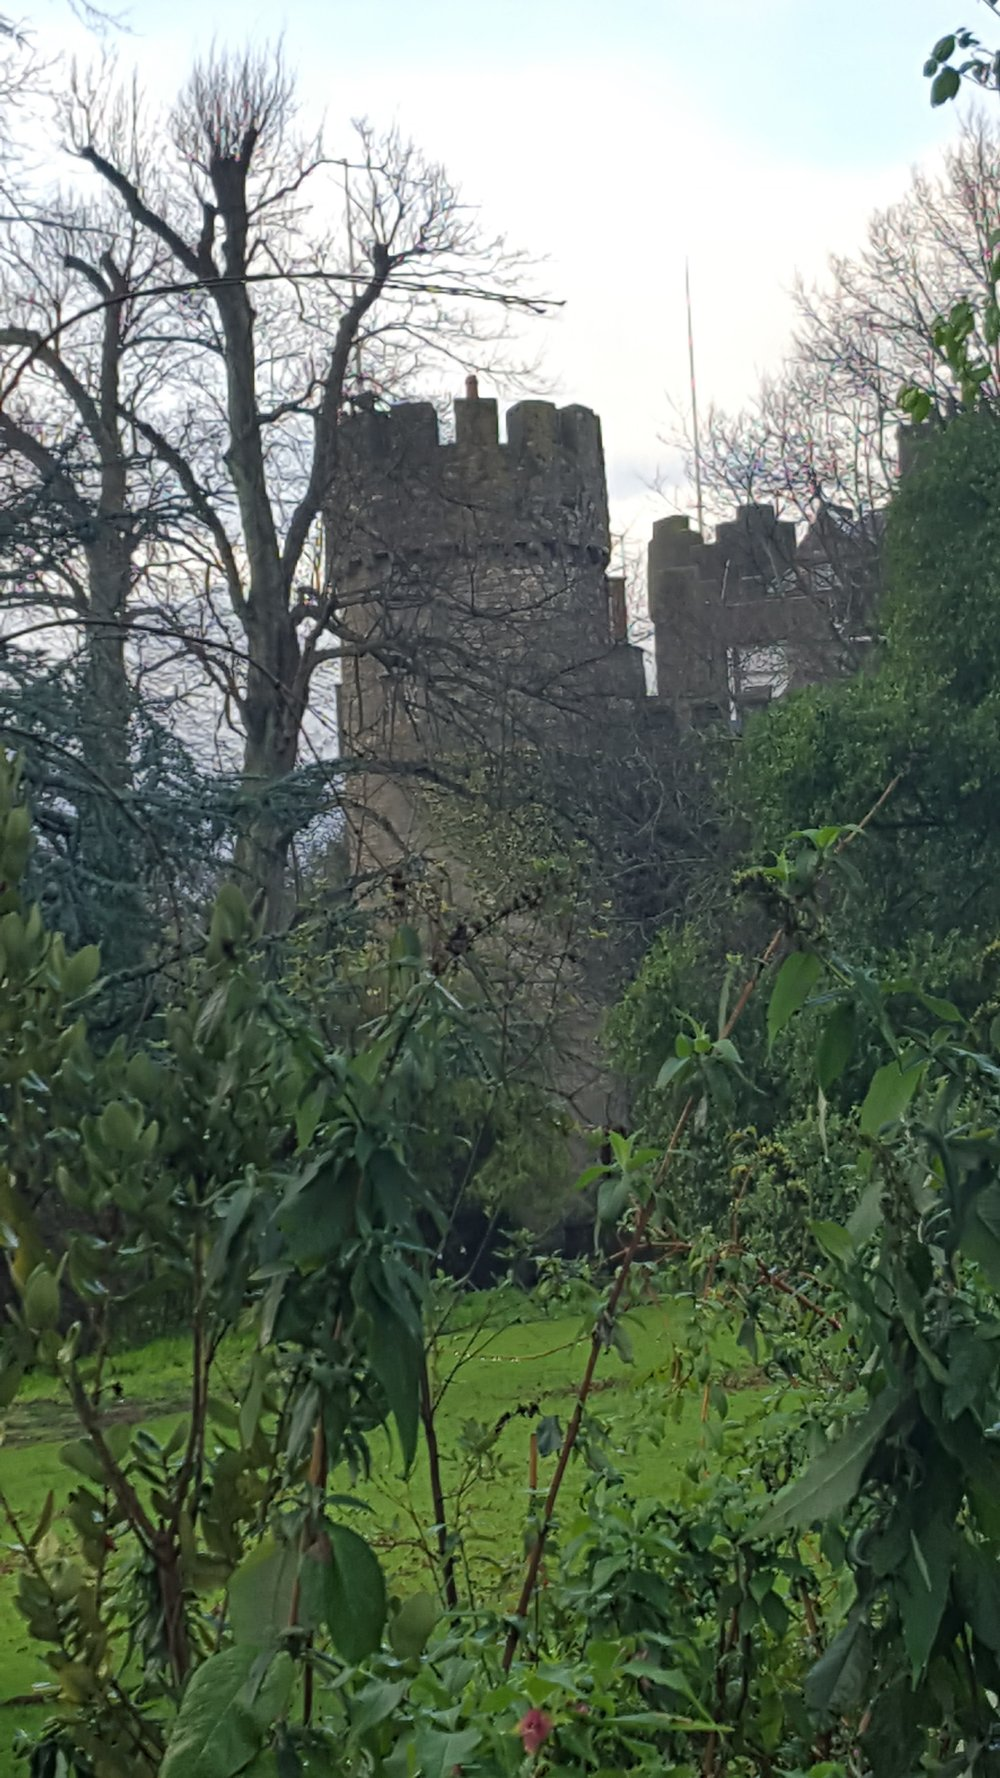 A turret behind the trees. Malahide Castle.